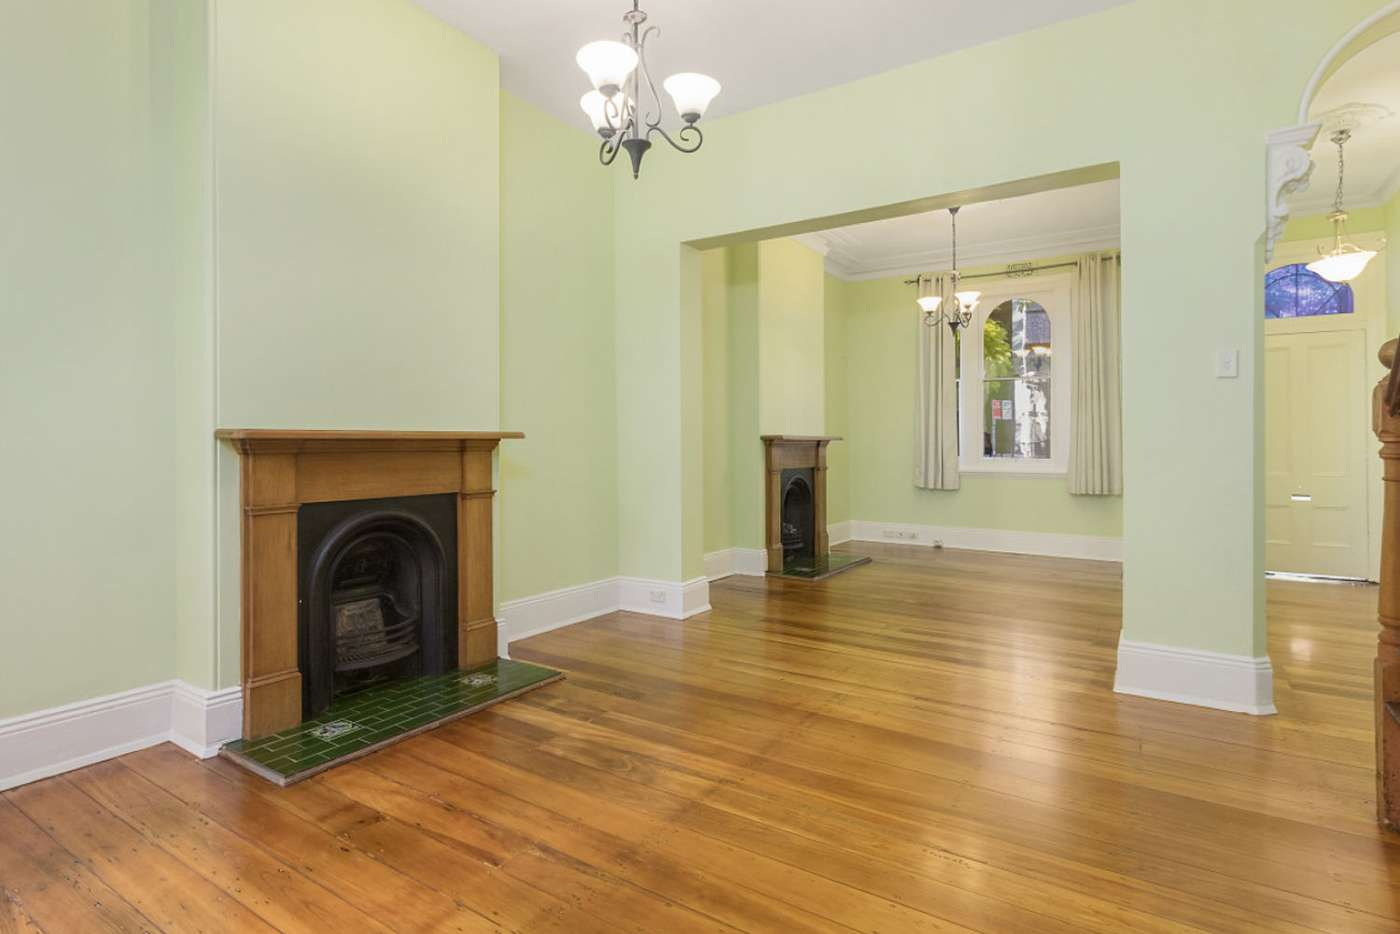 Sixth view of Homely house listing, 56 Ridge St, Surry Hills NSW 2010